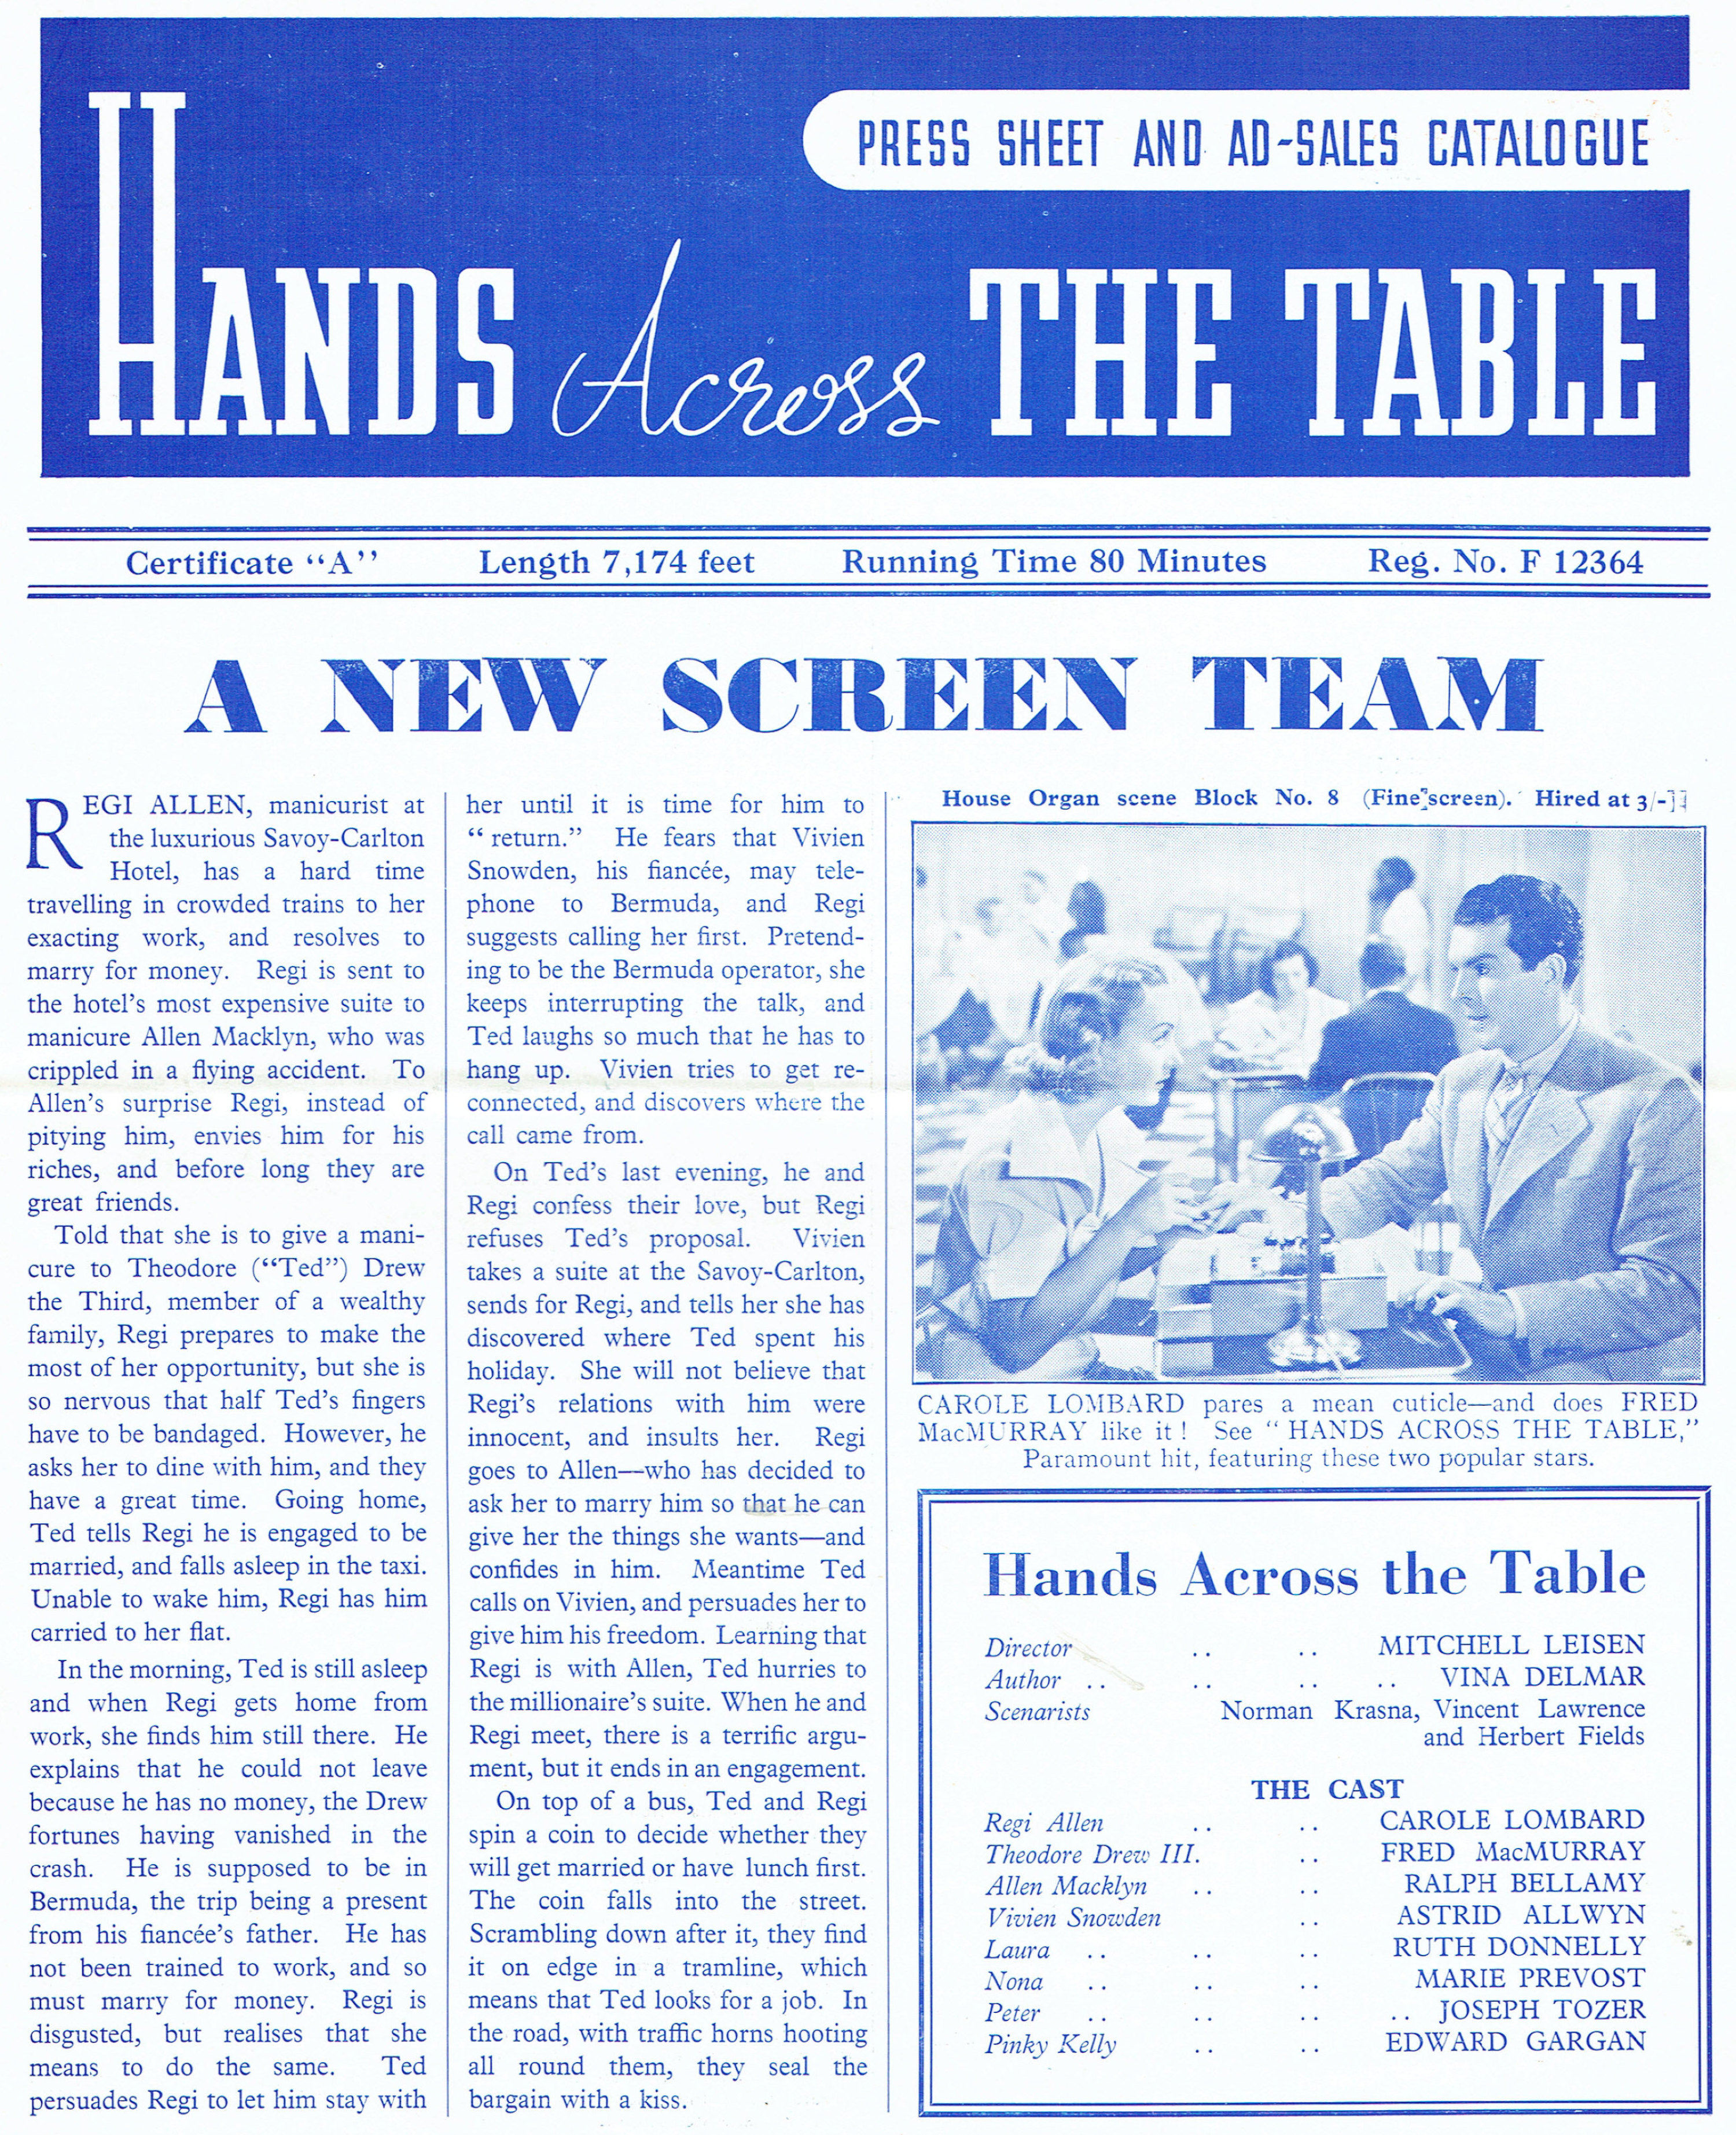 carole lombard hands across the table british pressbook 02b